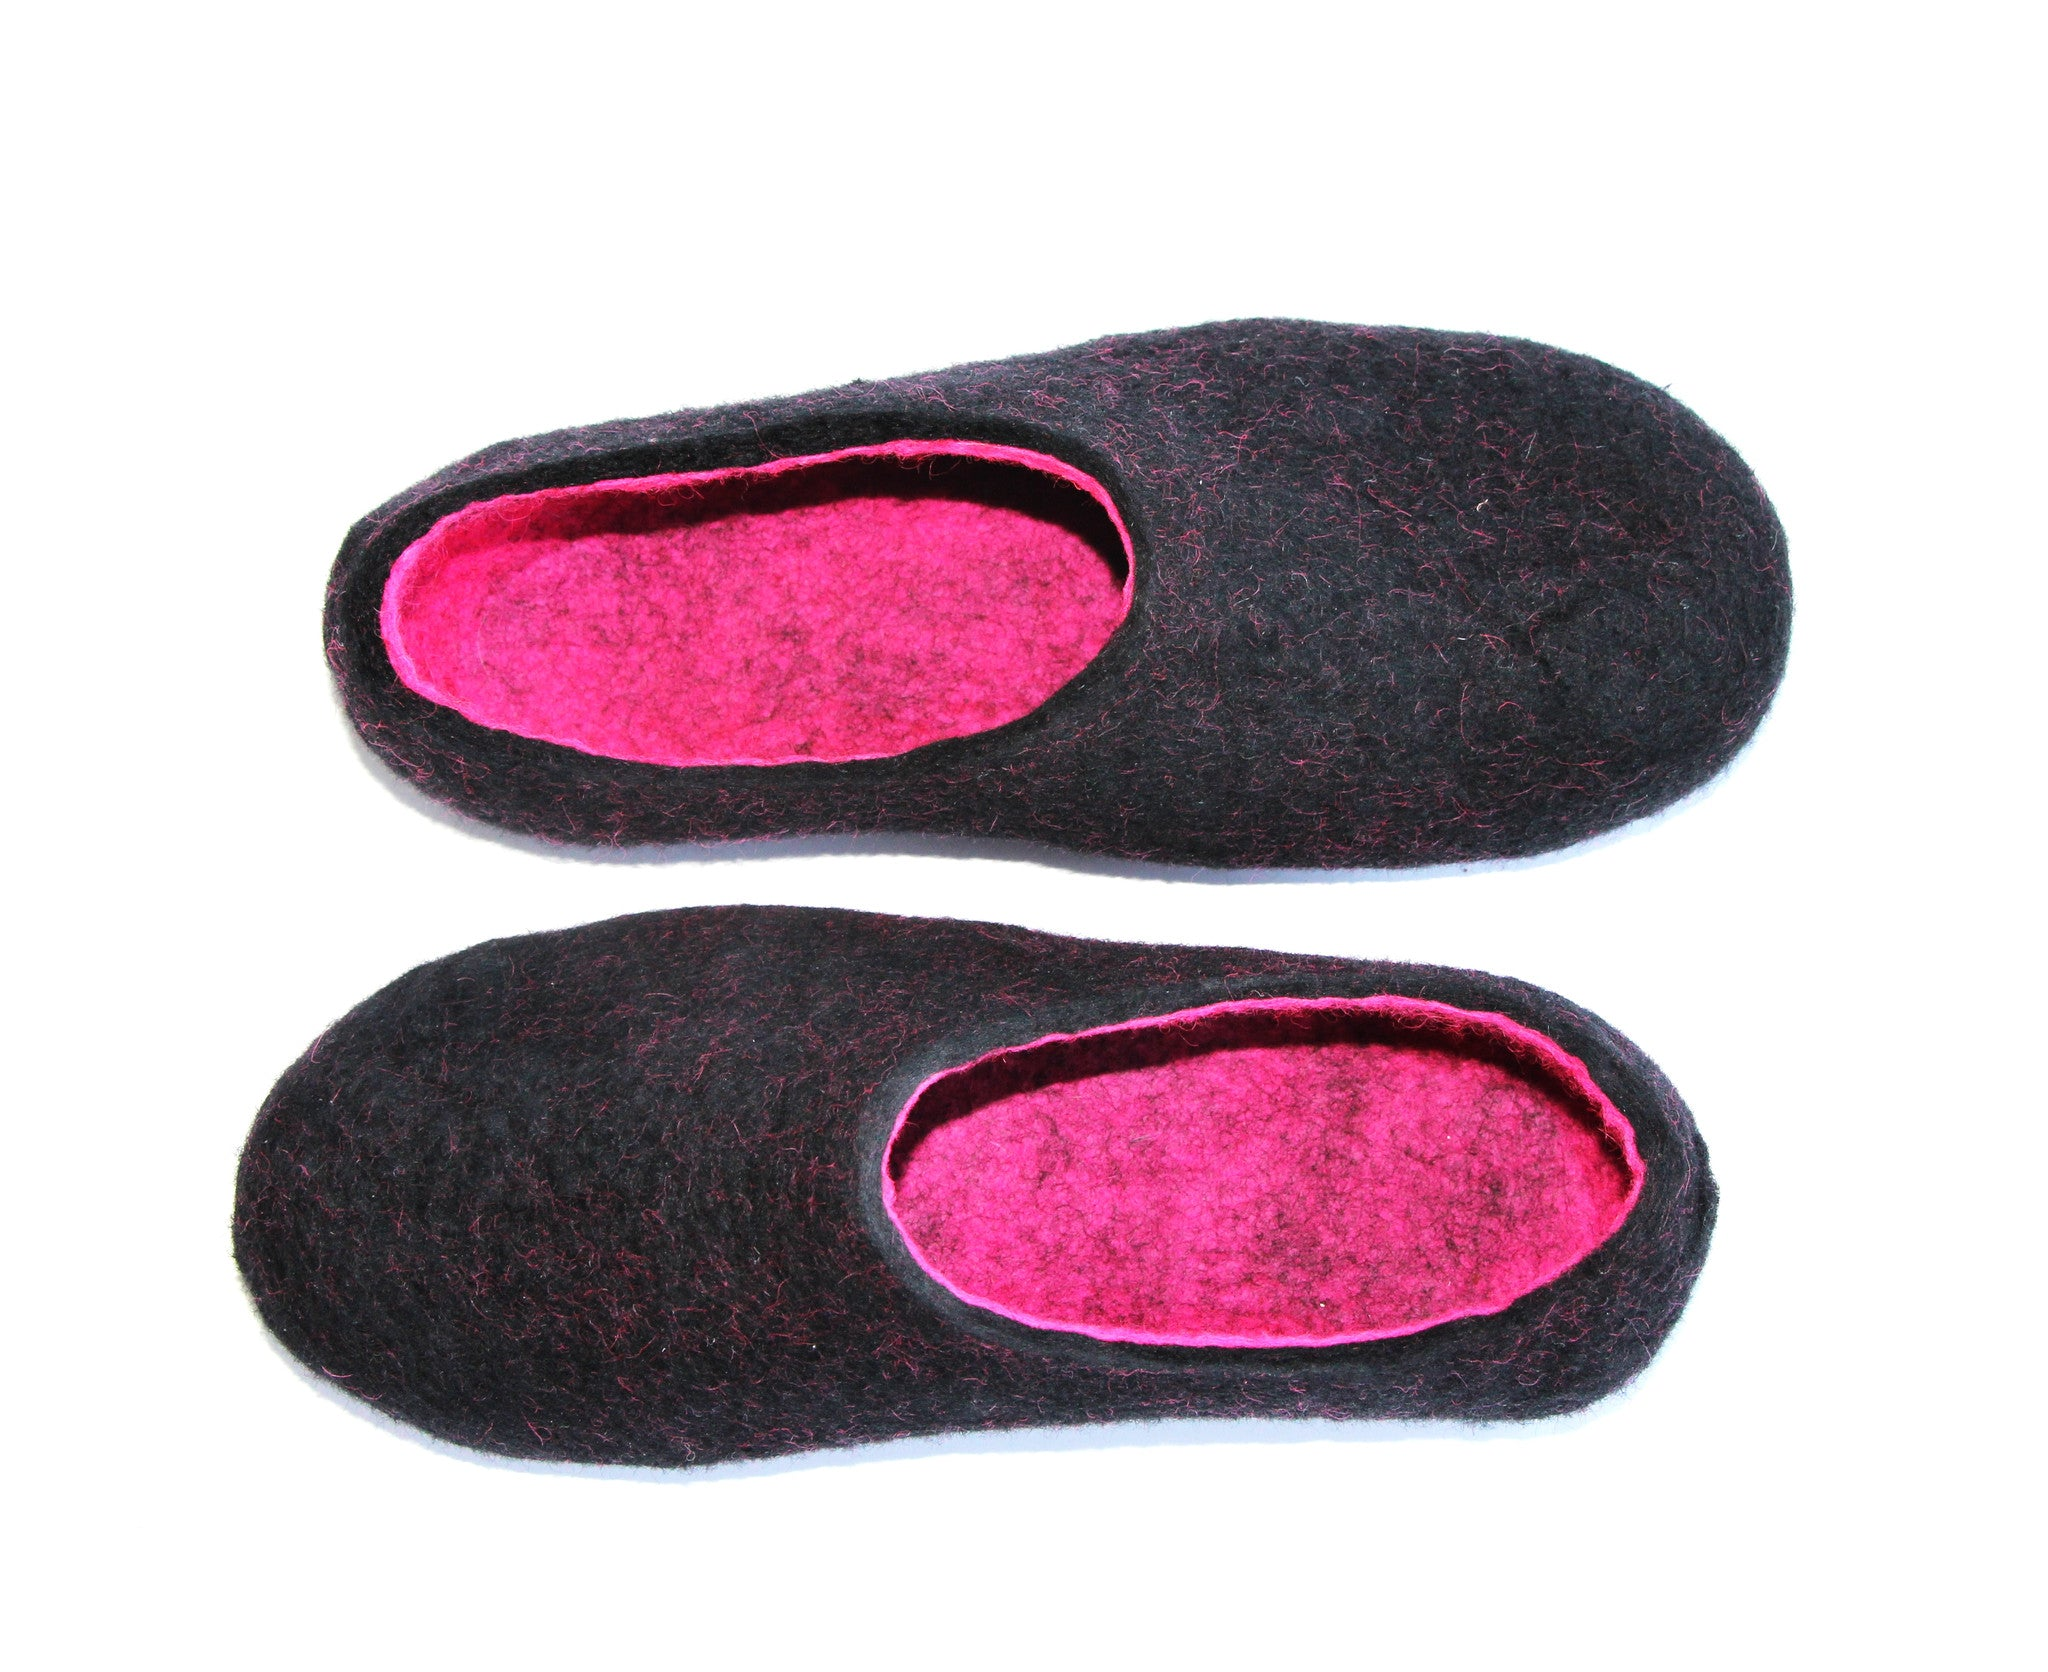 Womens Wool Felt Slippers Black Hot Pink Indoors - Wool Walker  - 5